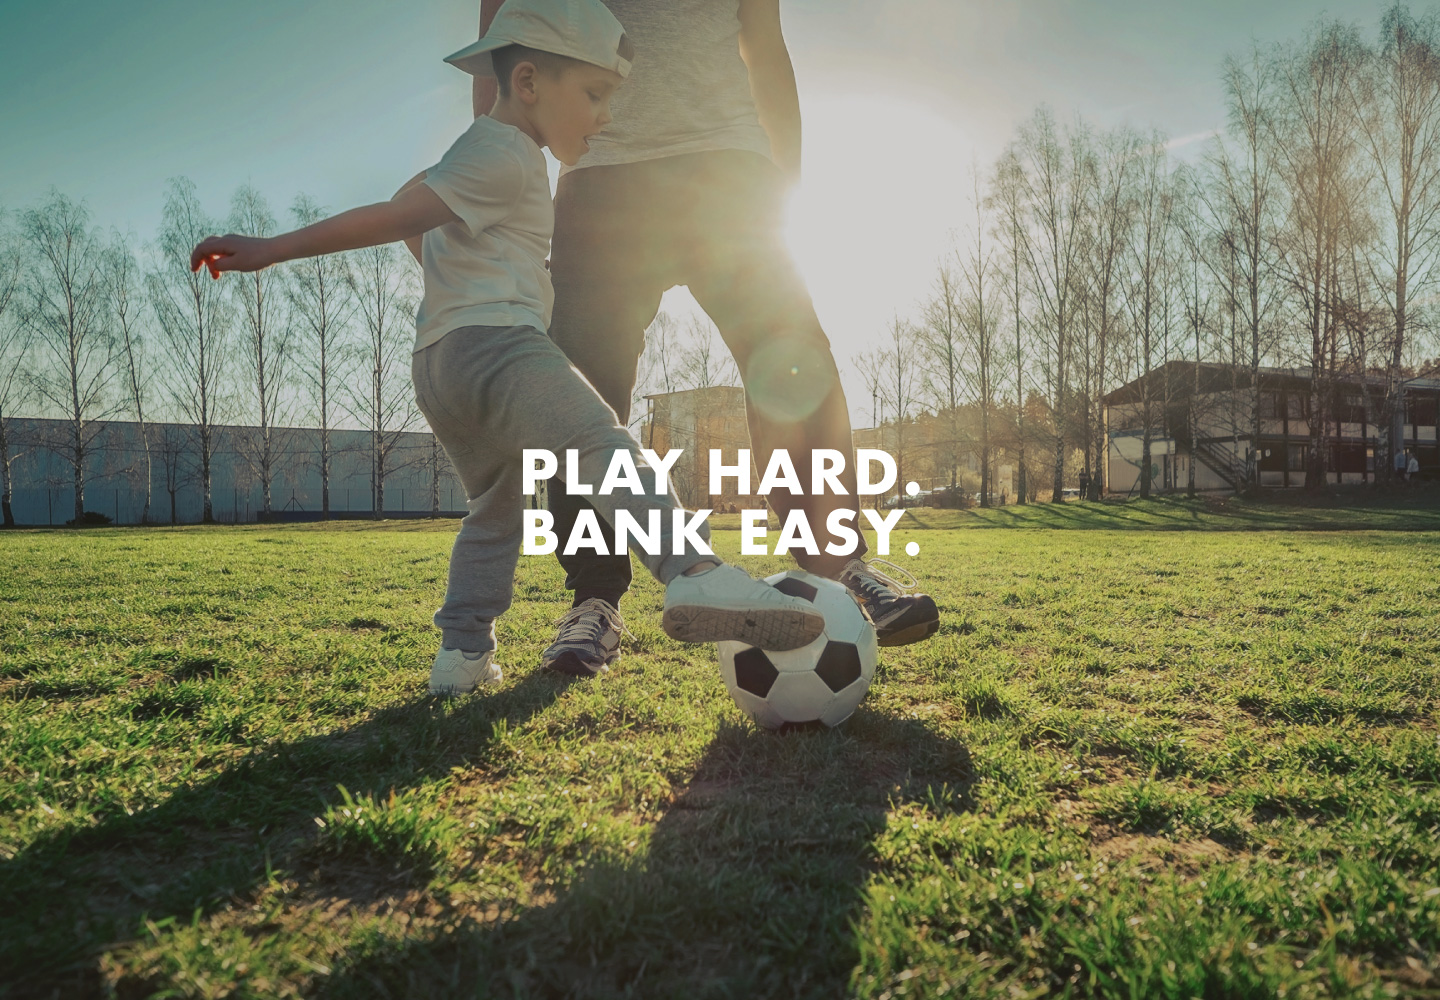 """Image of father and son playing in yard with words """"Play hard bank easy."""""""